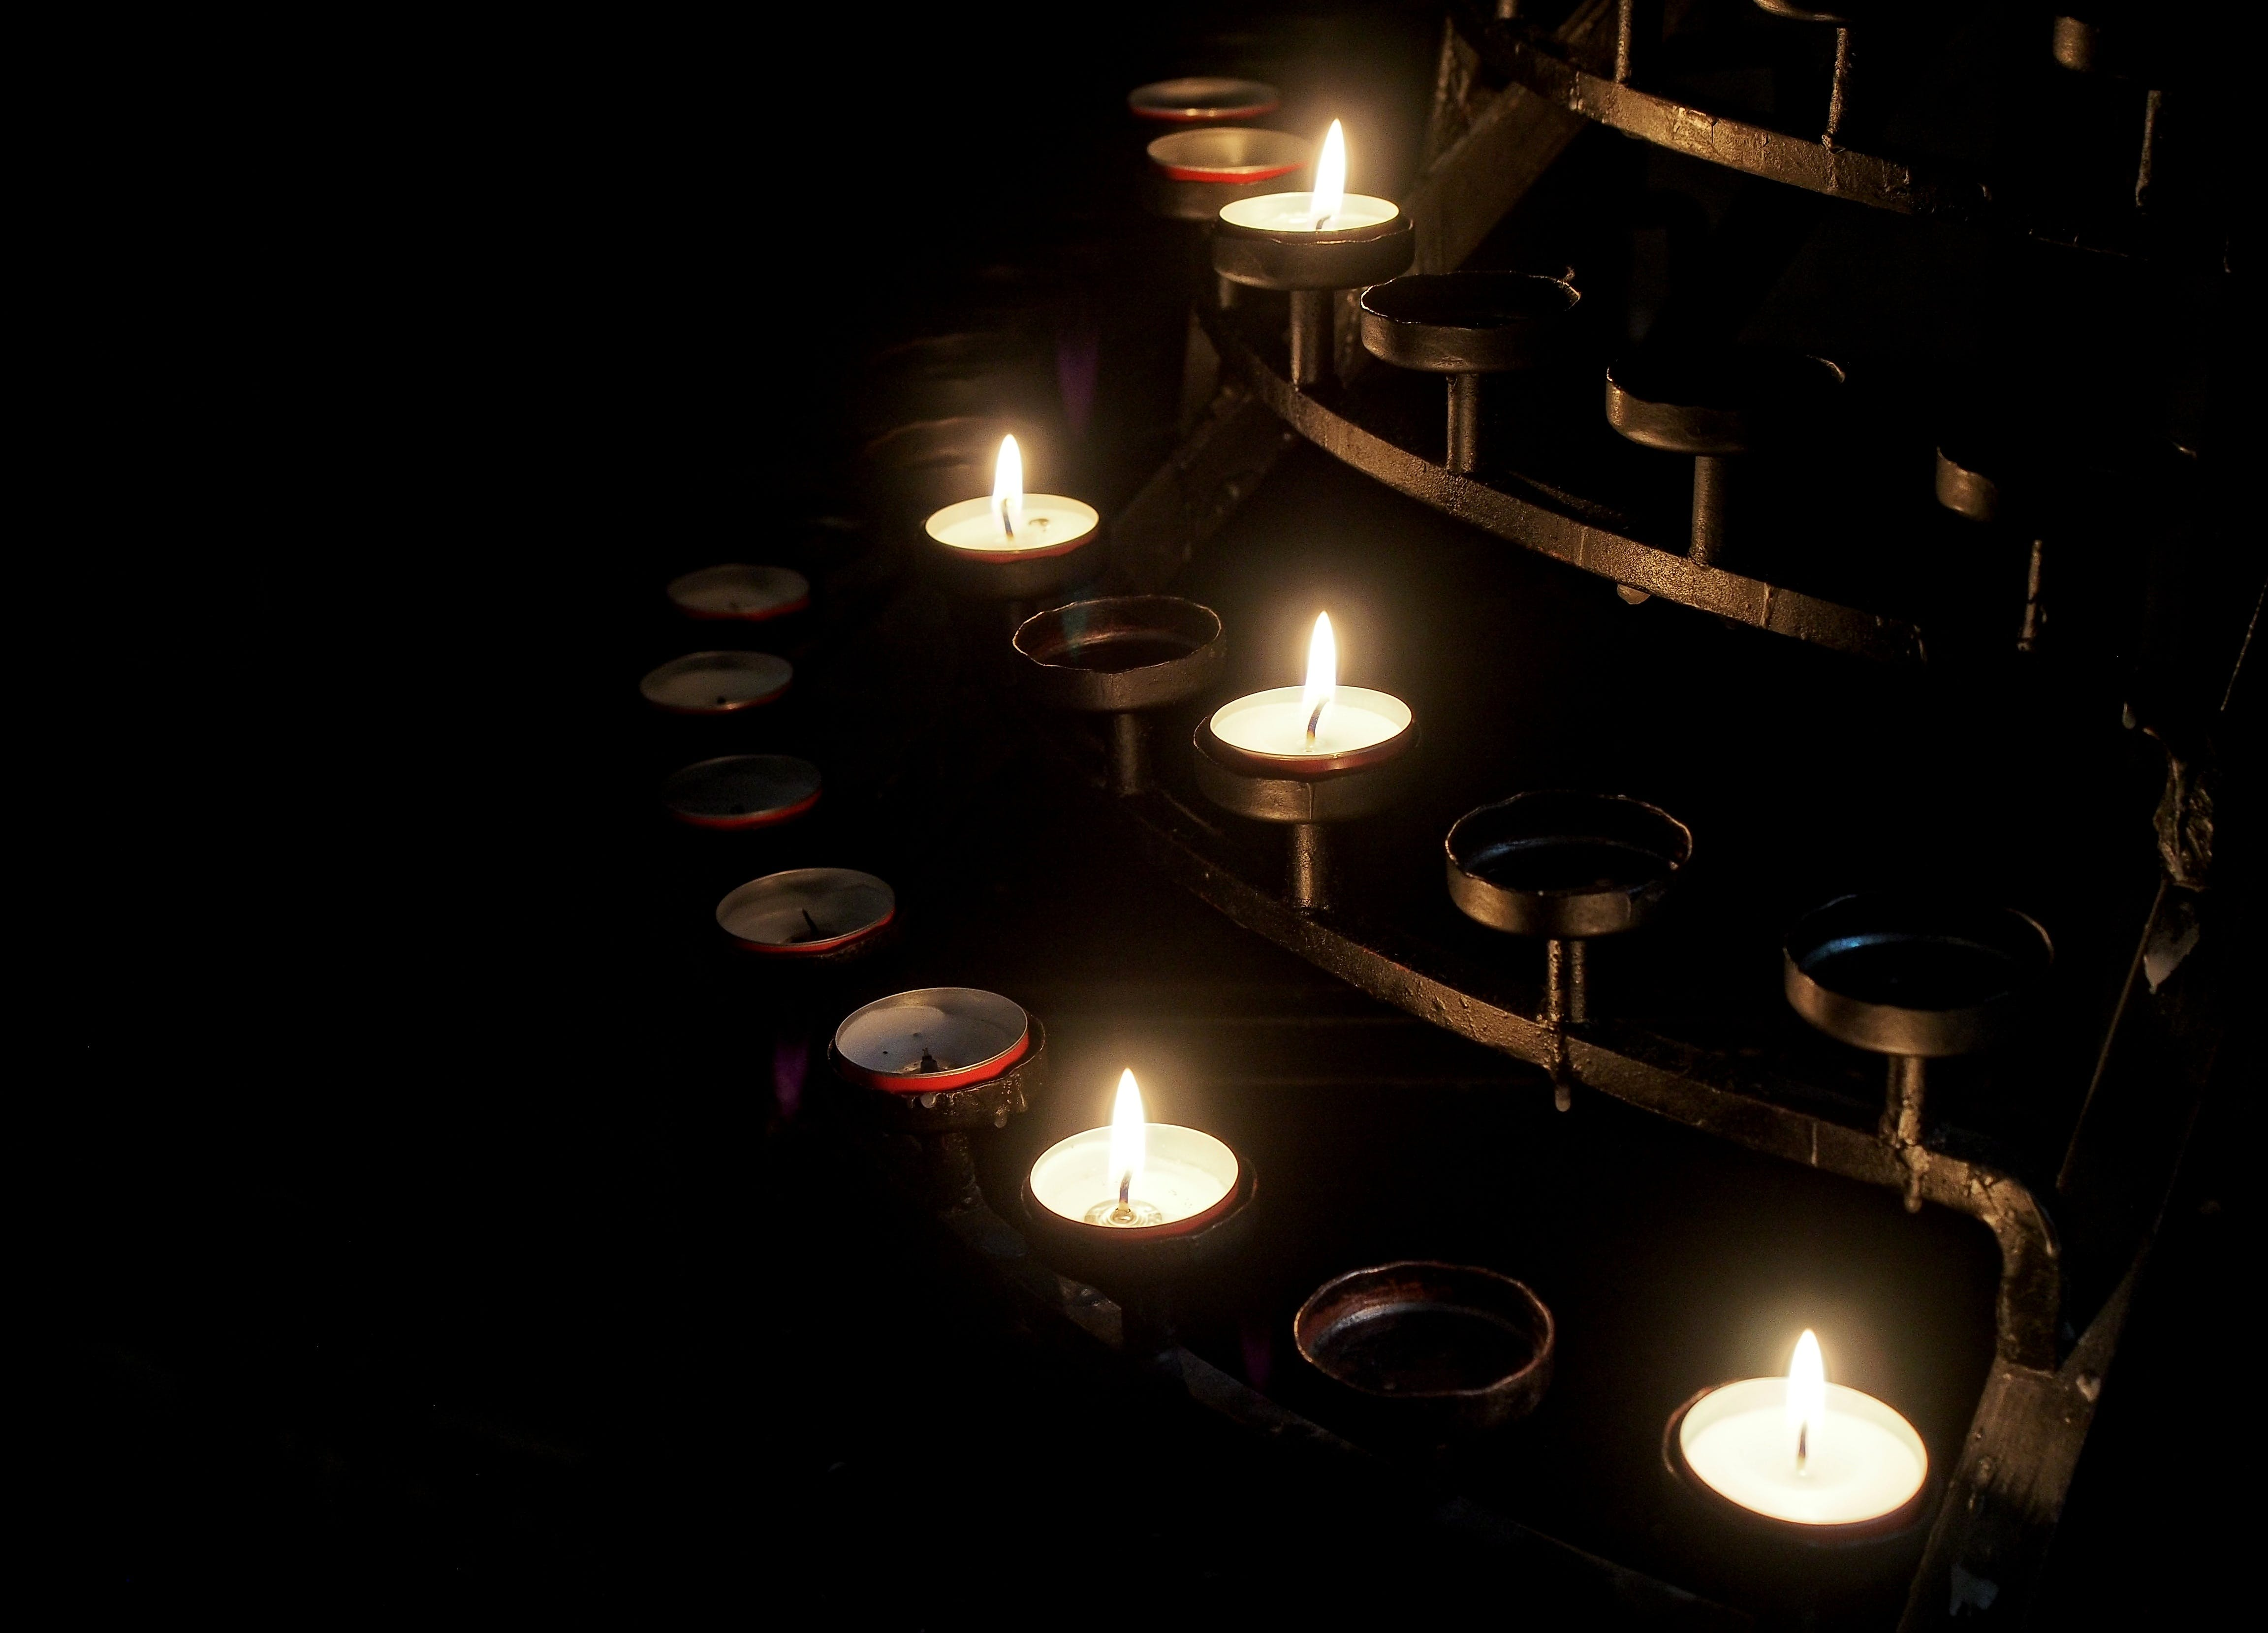 Five Lit Votive Candles on Candle Holder